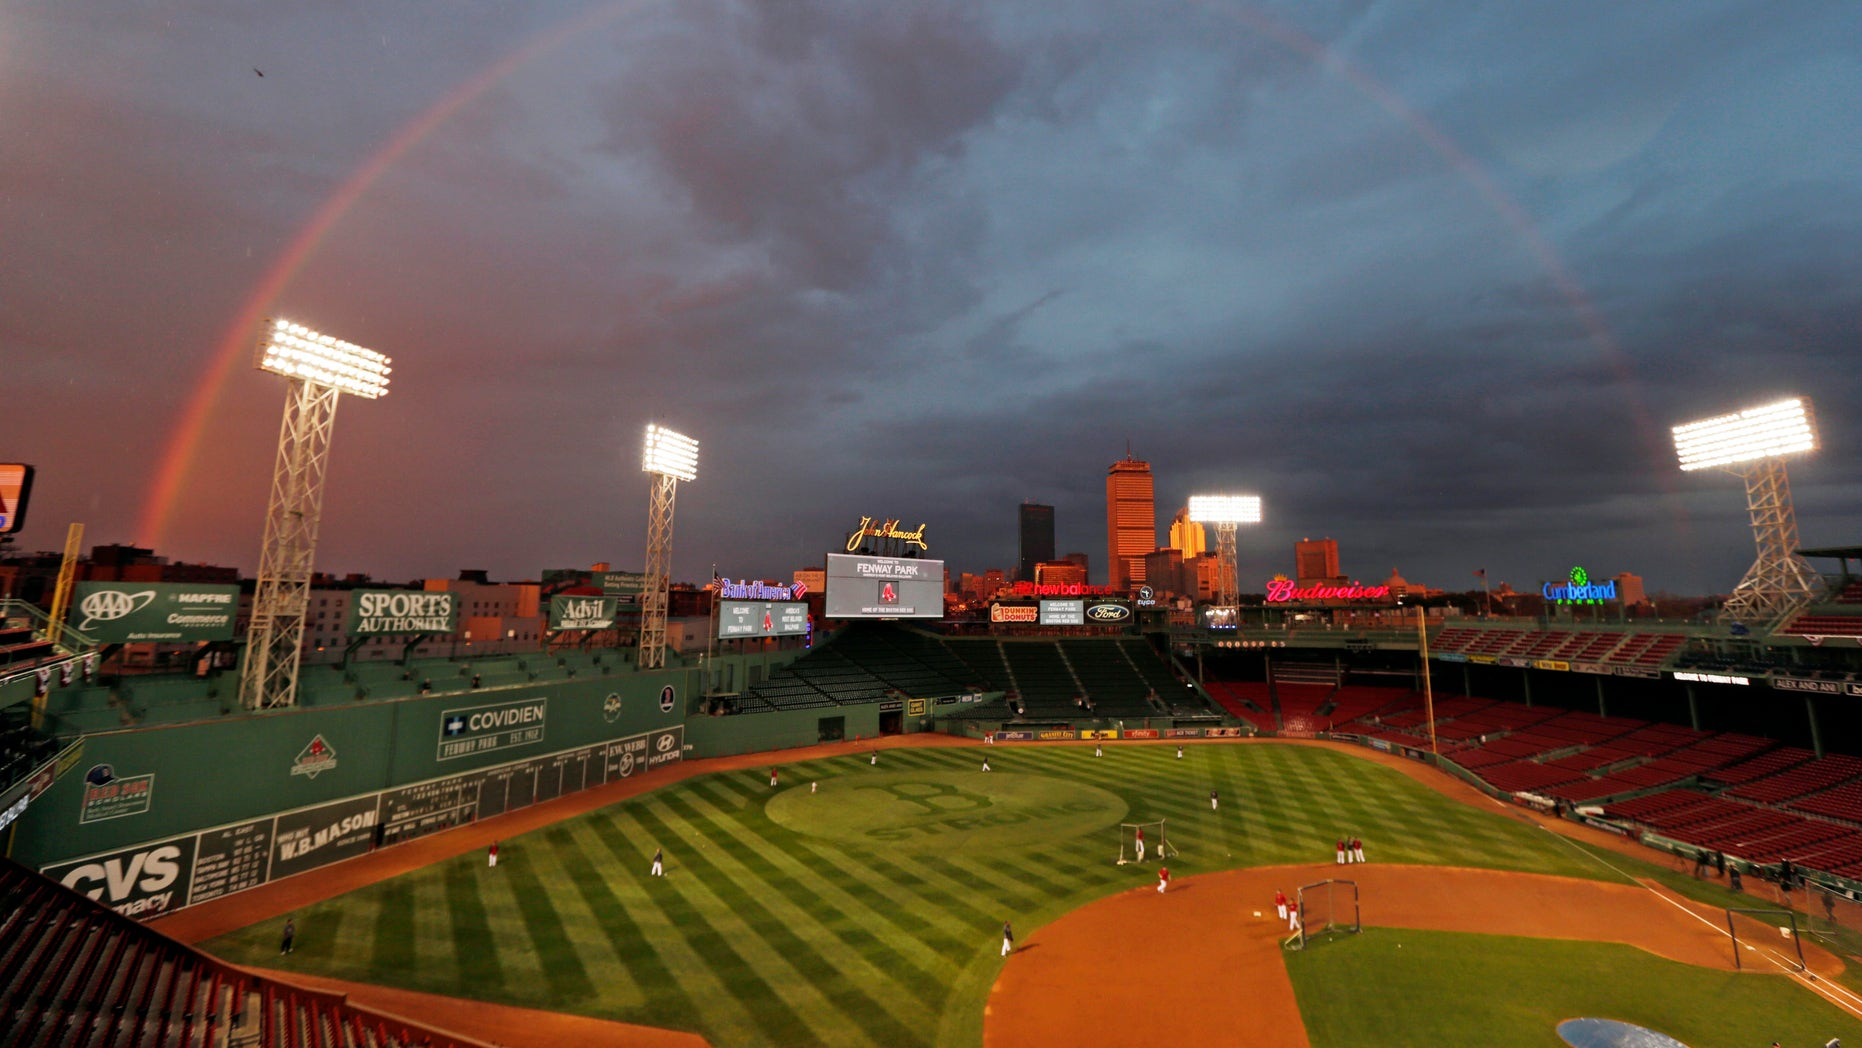 Boston Red Sox players take batting practice as a rainbow appears in the sky above Fenway Park Tuesday, Oct. 22, 2013, in Boston. The Red Sox are scheduled to host the St. Louis Cardinals in Game 1 of baseball's World Series on Wednesday.  (AP Photo/Charles Krupa)